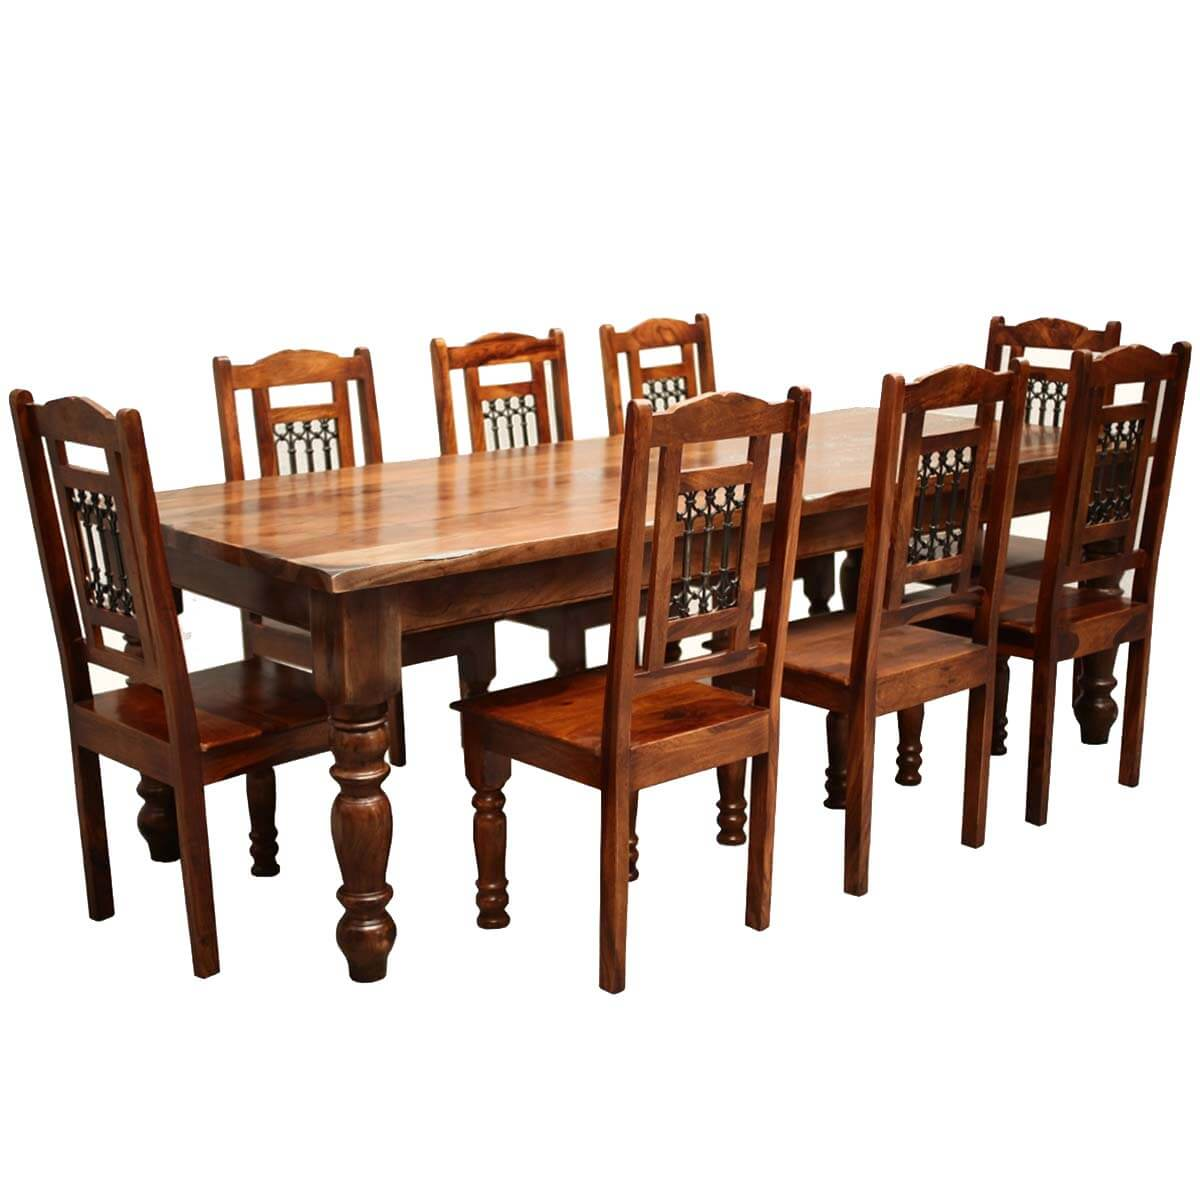 Rustic furniture solid wood large dining table 8 chair set for Wooden dining table and chairs